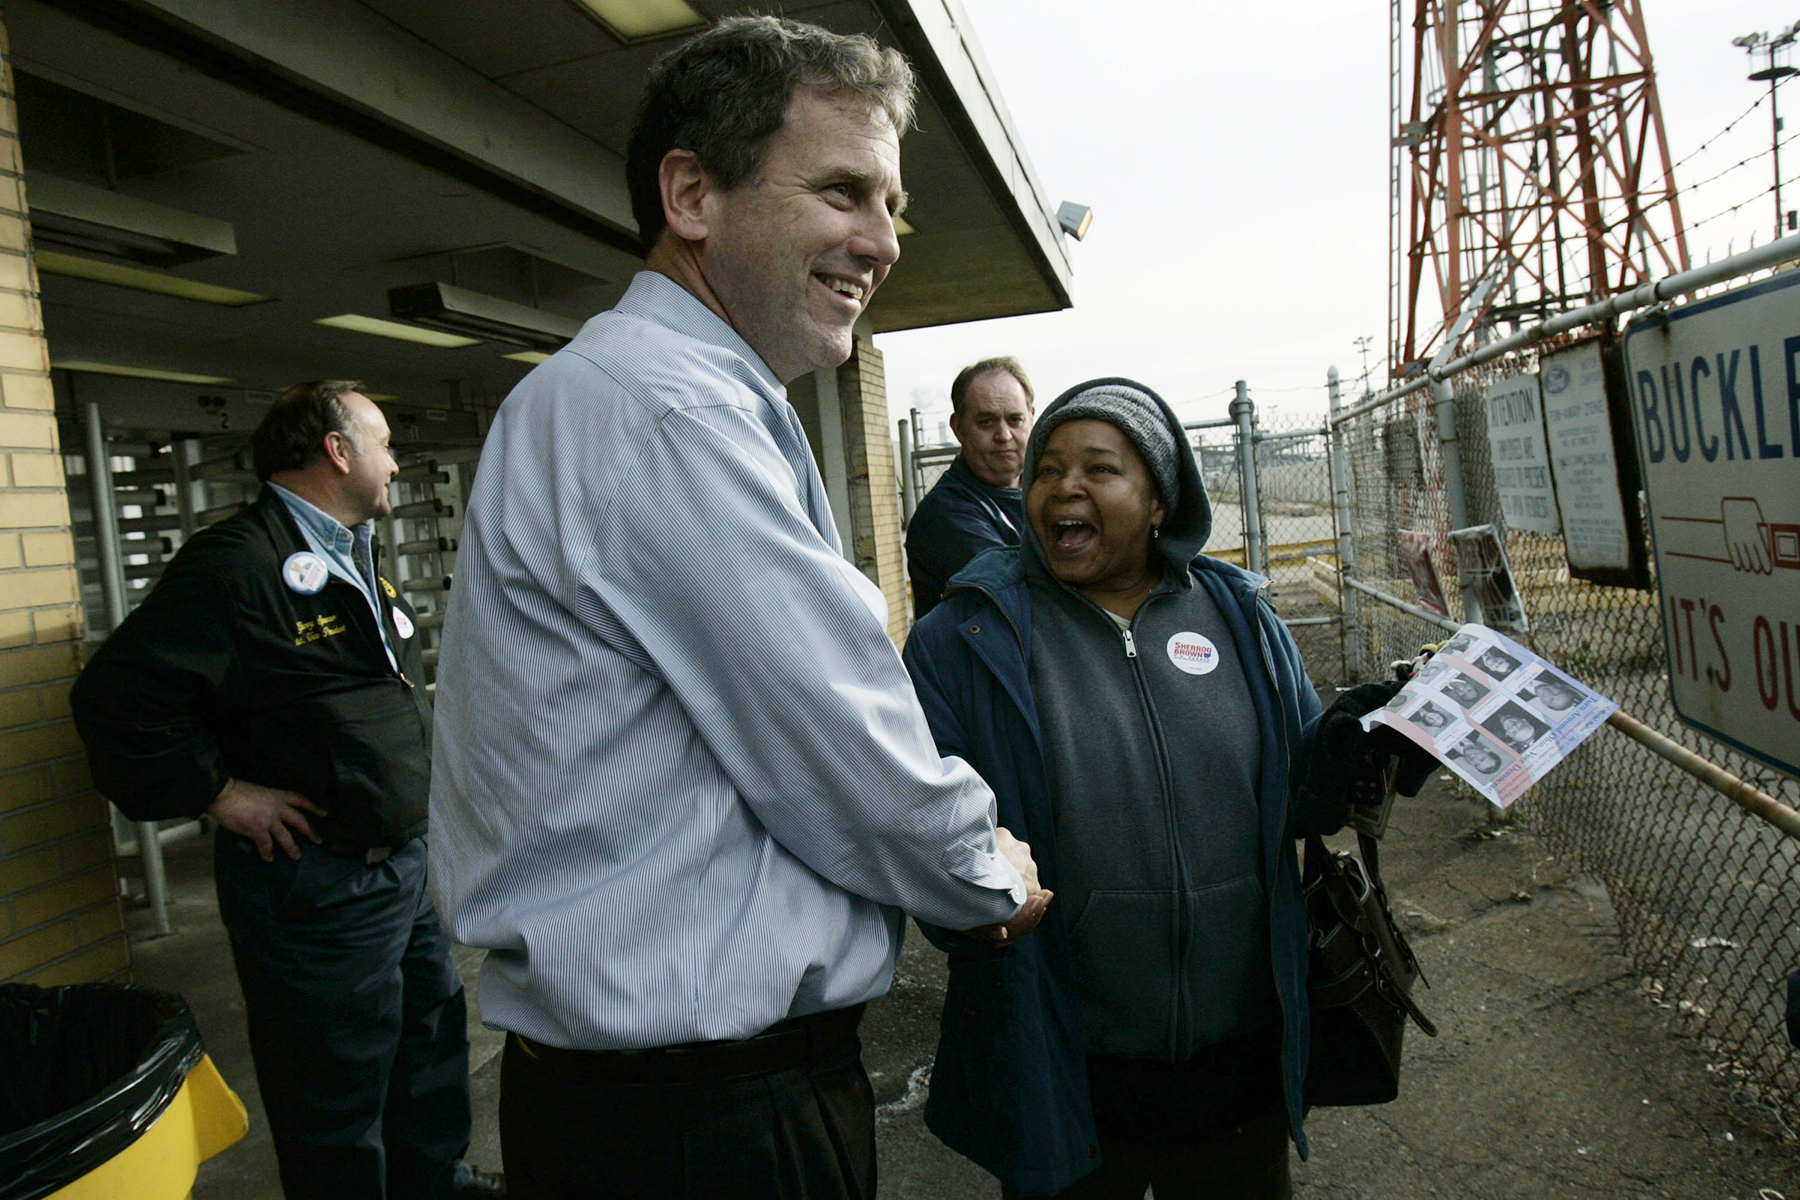 BROOK PARK, OH - NOVEMBER 6: Ohio Democratic U.S. Senate candidate Sherrod Brown shakes hands with workers as they leave the the Ford Engine Plant November 6, 2006 in Brook Park, Ohio. Working his Northern Ohio base with campaign stops one day before the election, Brown is scheduled to attend a rally in another Cleveland suburb, Parma, later today with Rep. Dennis Kucinich (D-OH) and the Parma Mayor Dean DePiero. (Photo by Jamie Rose/Getty Images)